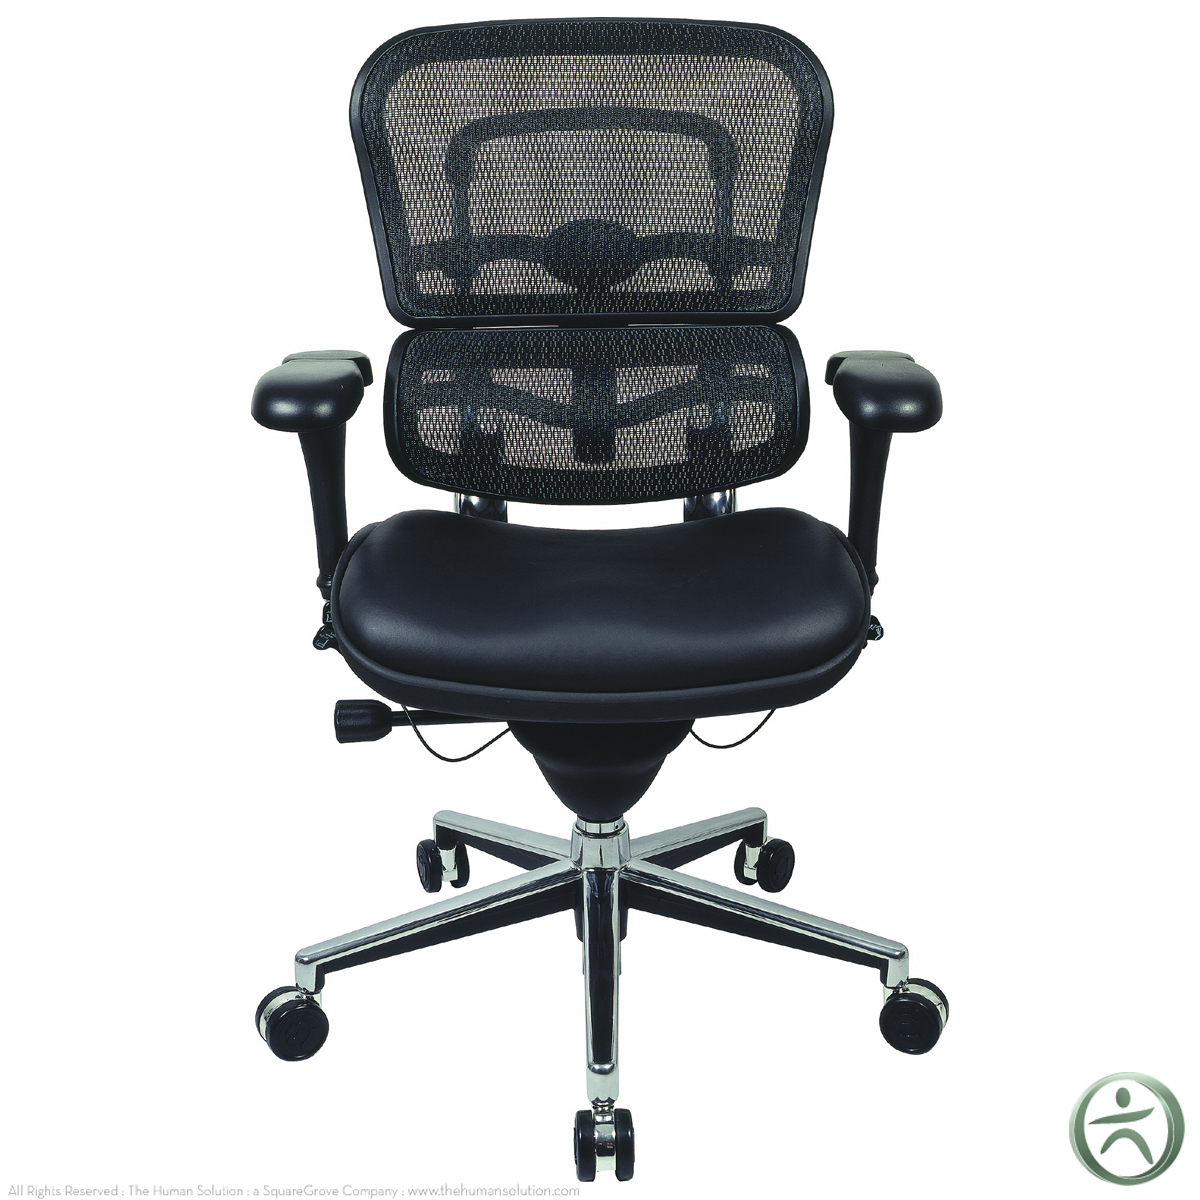 Raynor Chairs Raynor Ergohuman Chair Mesh Chair With Leather Seat